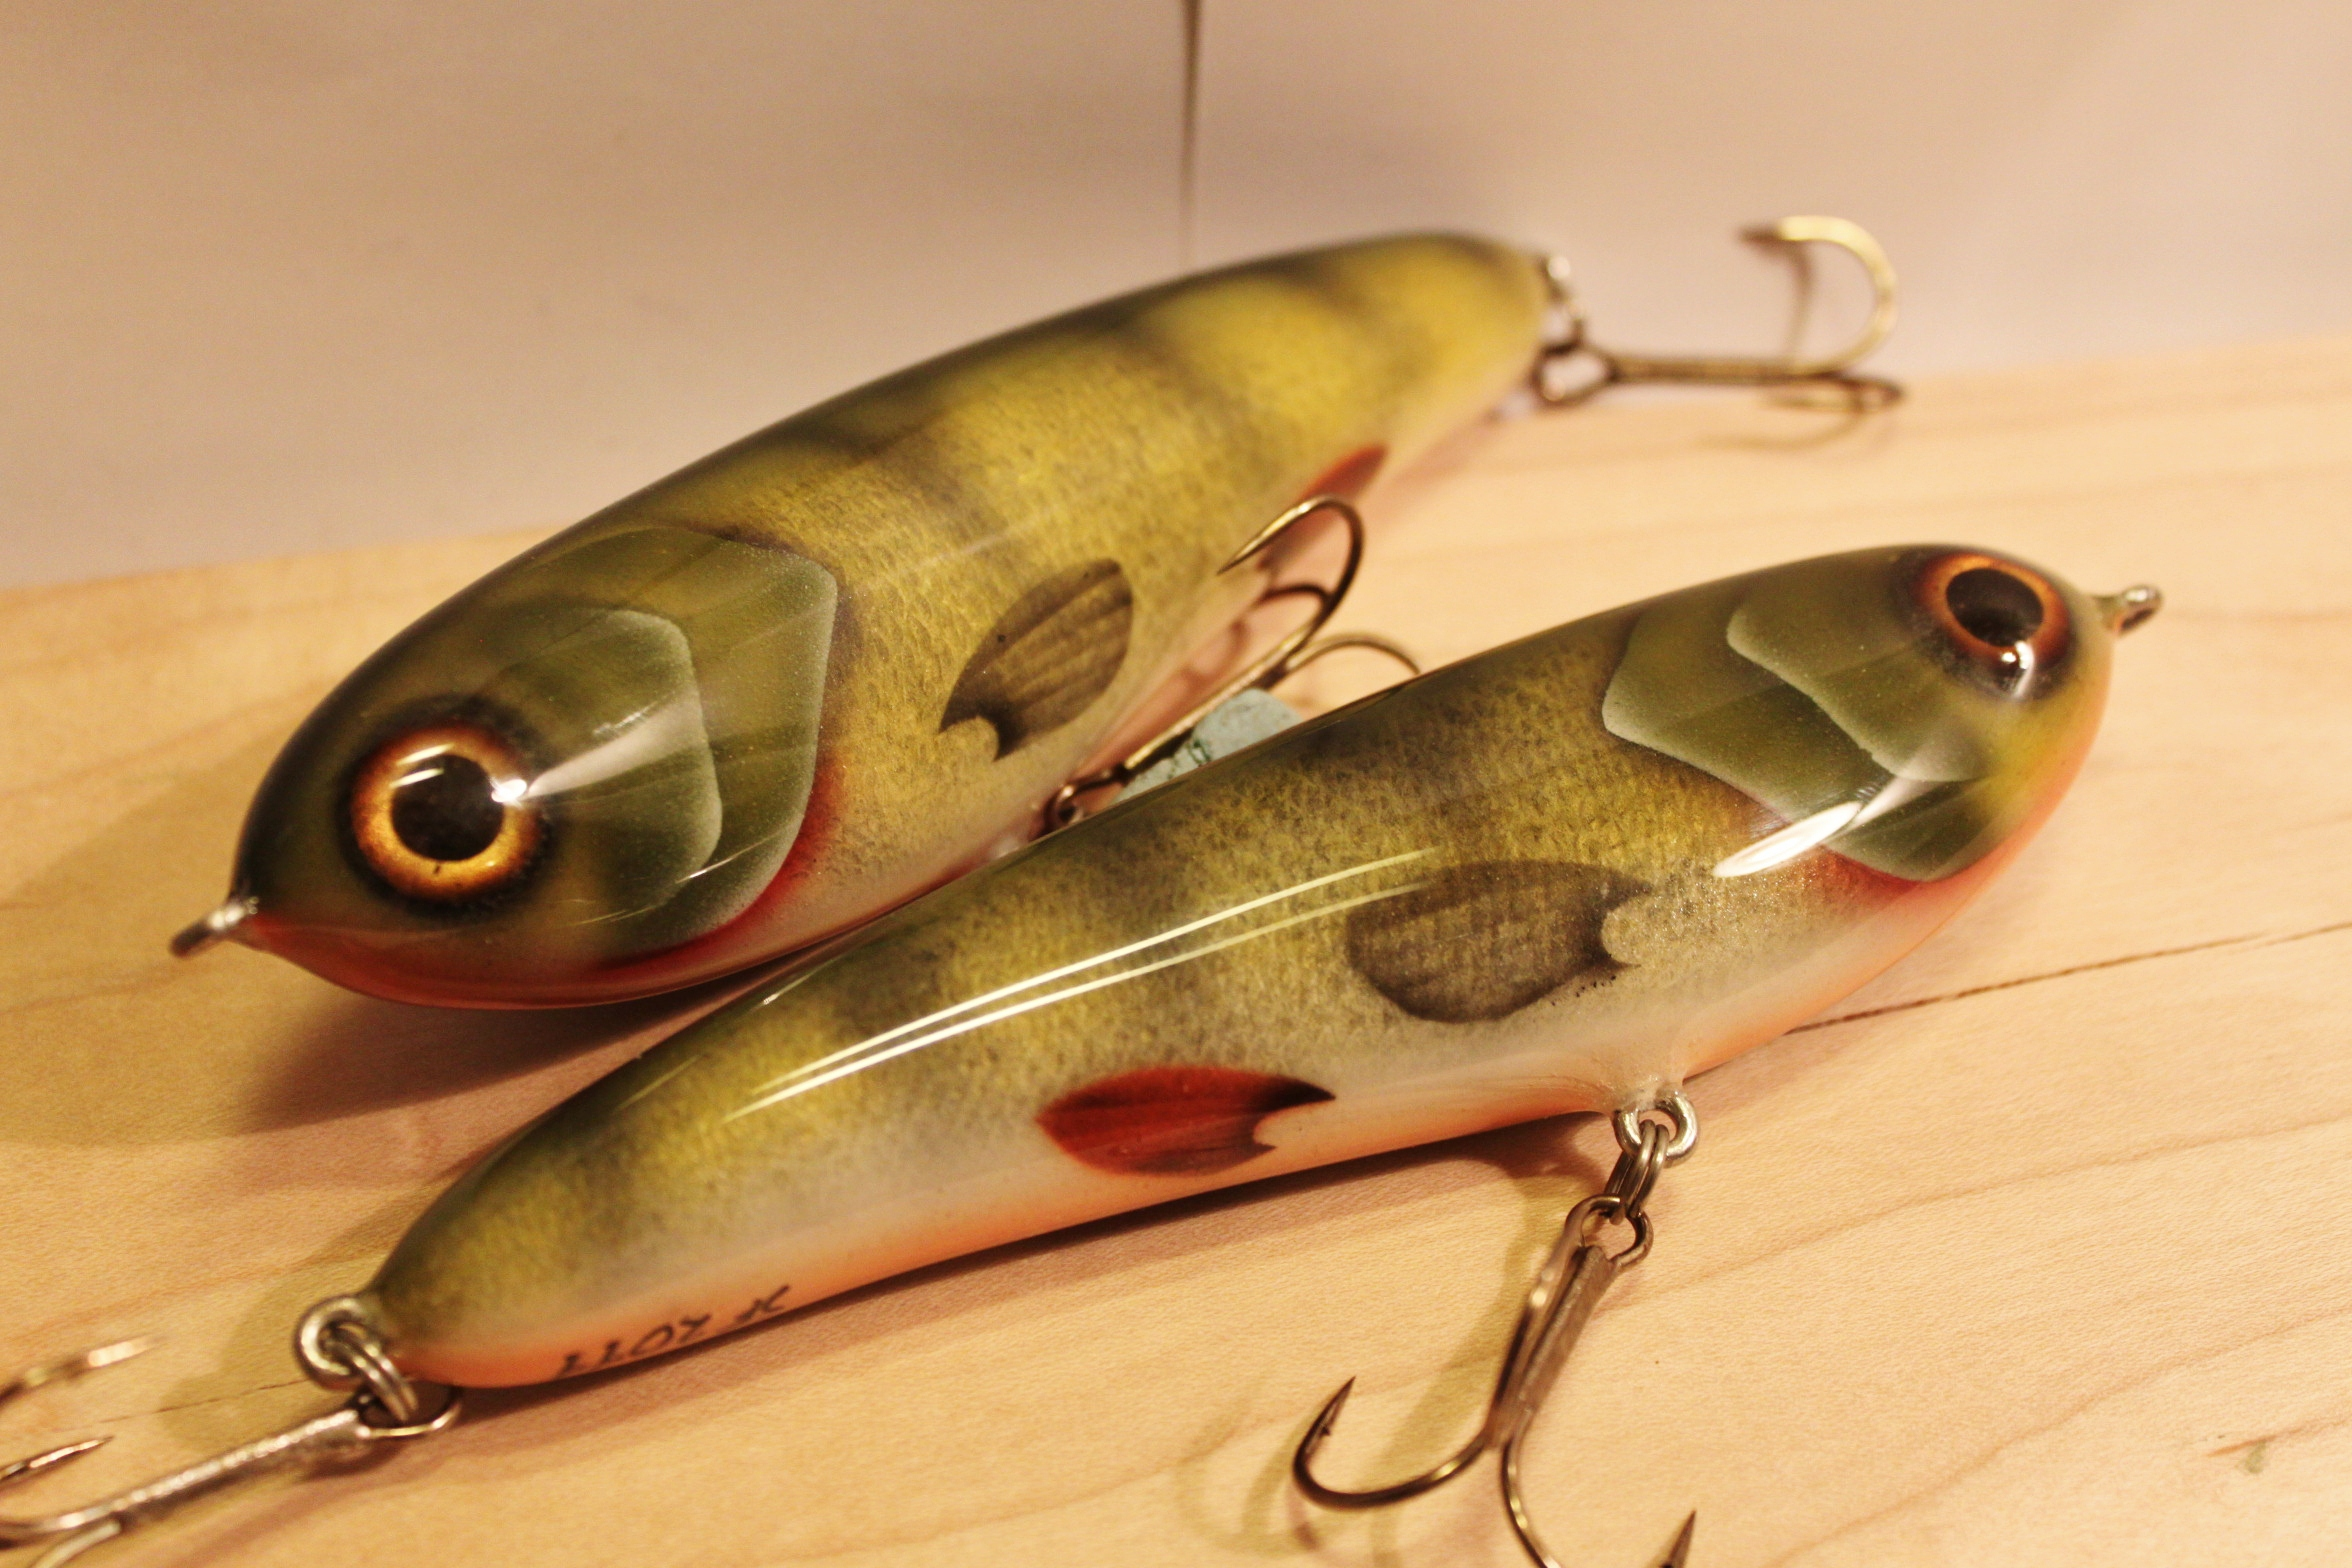 Best lure on zander. Homemade lure on pikeperch 53